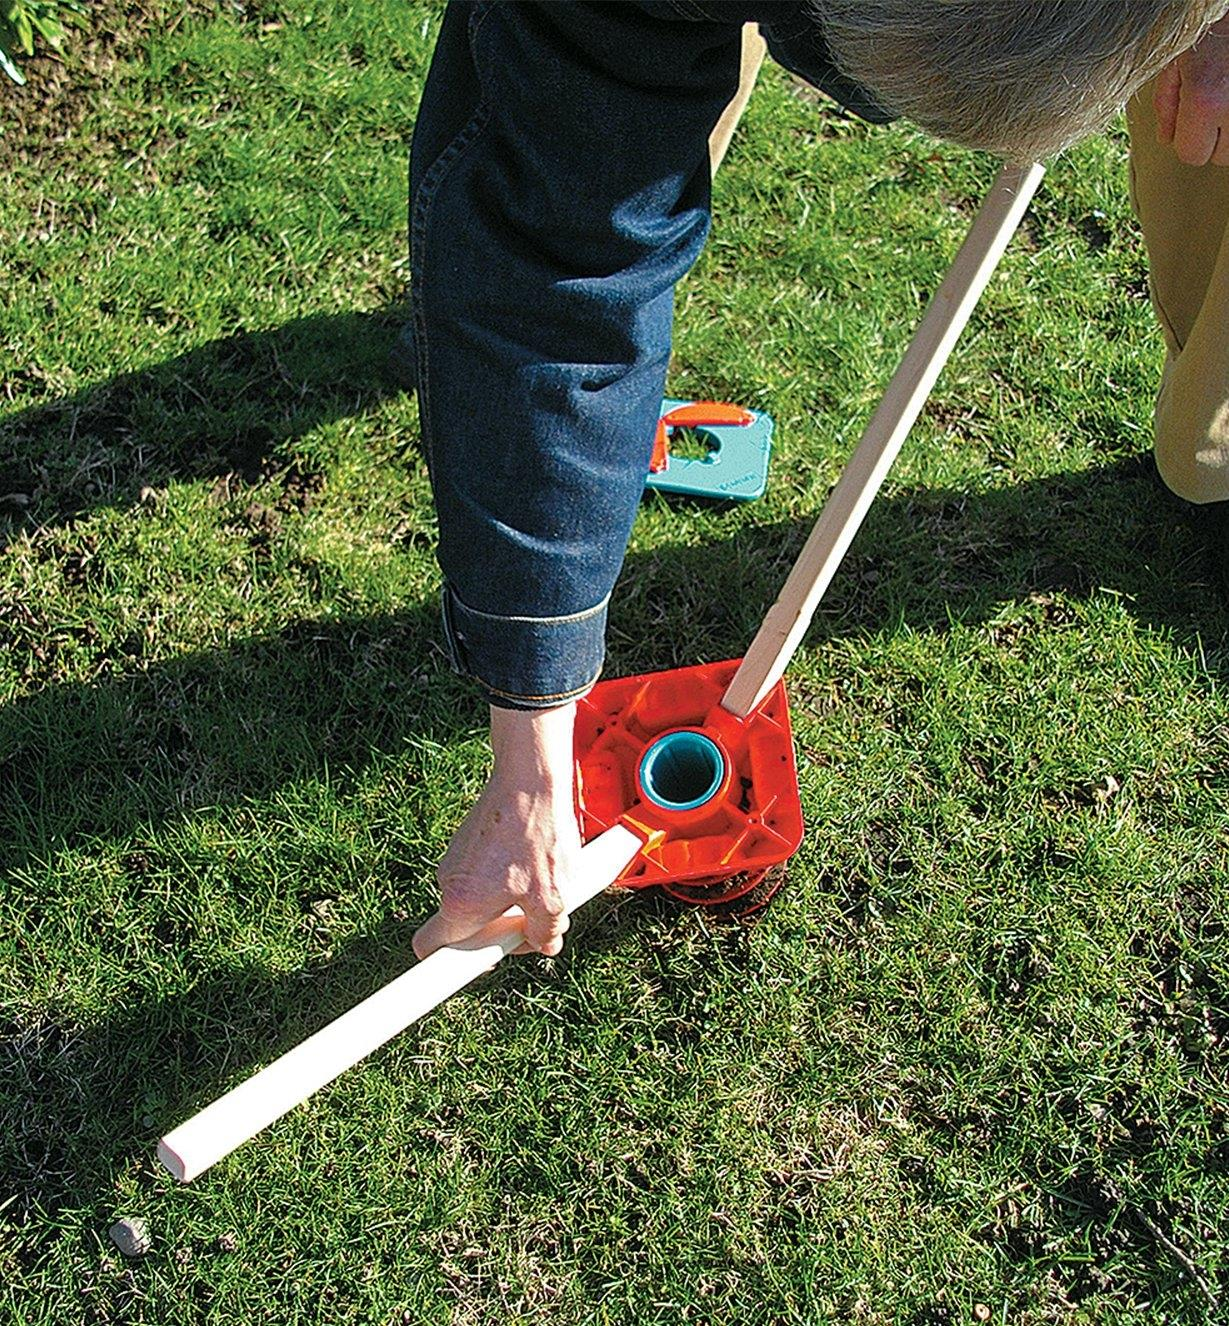 Installing the ground screw by twisting it into the ground using two rods